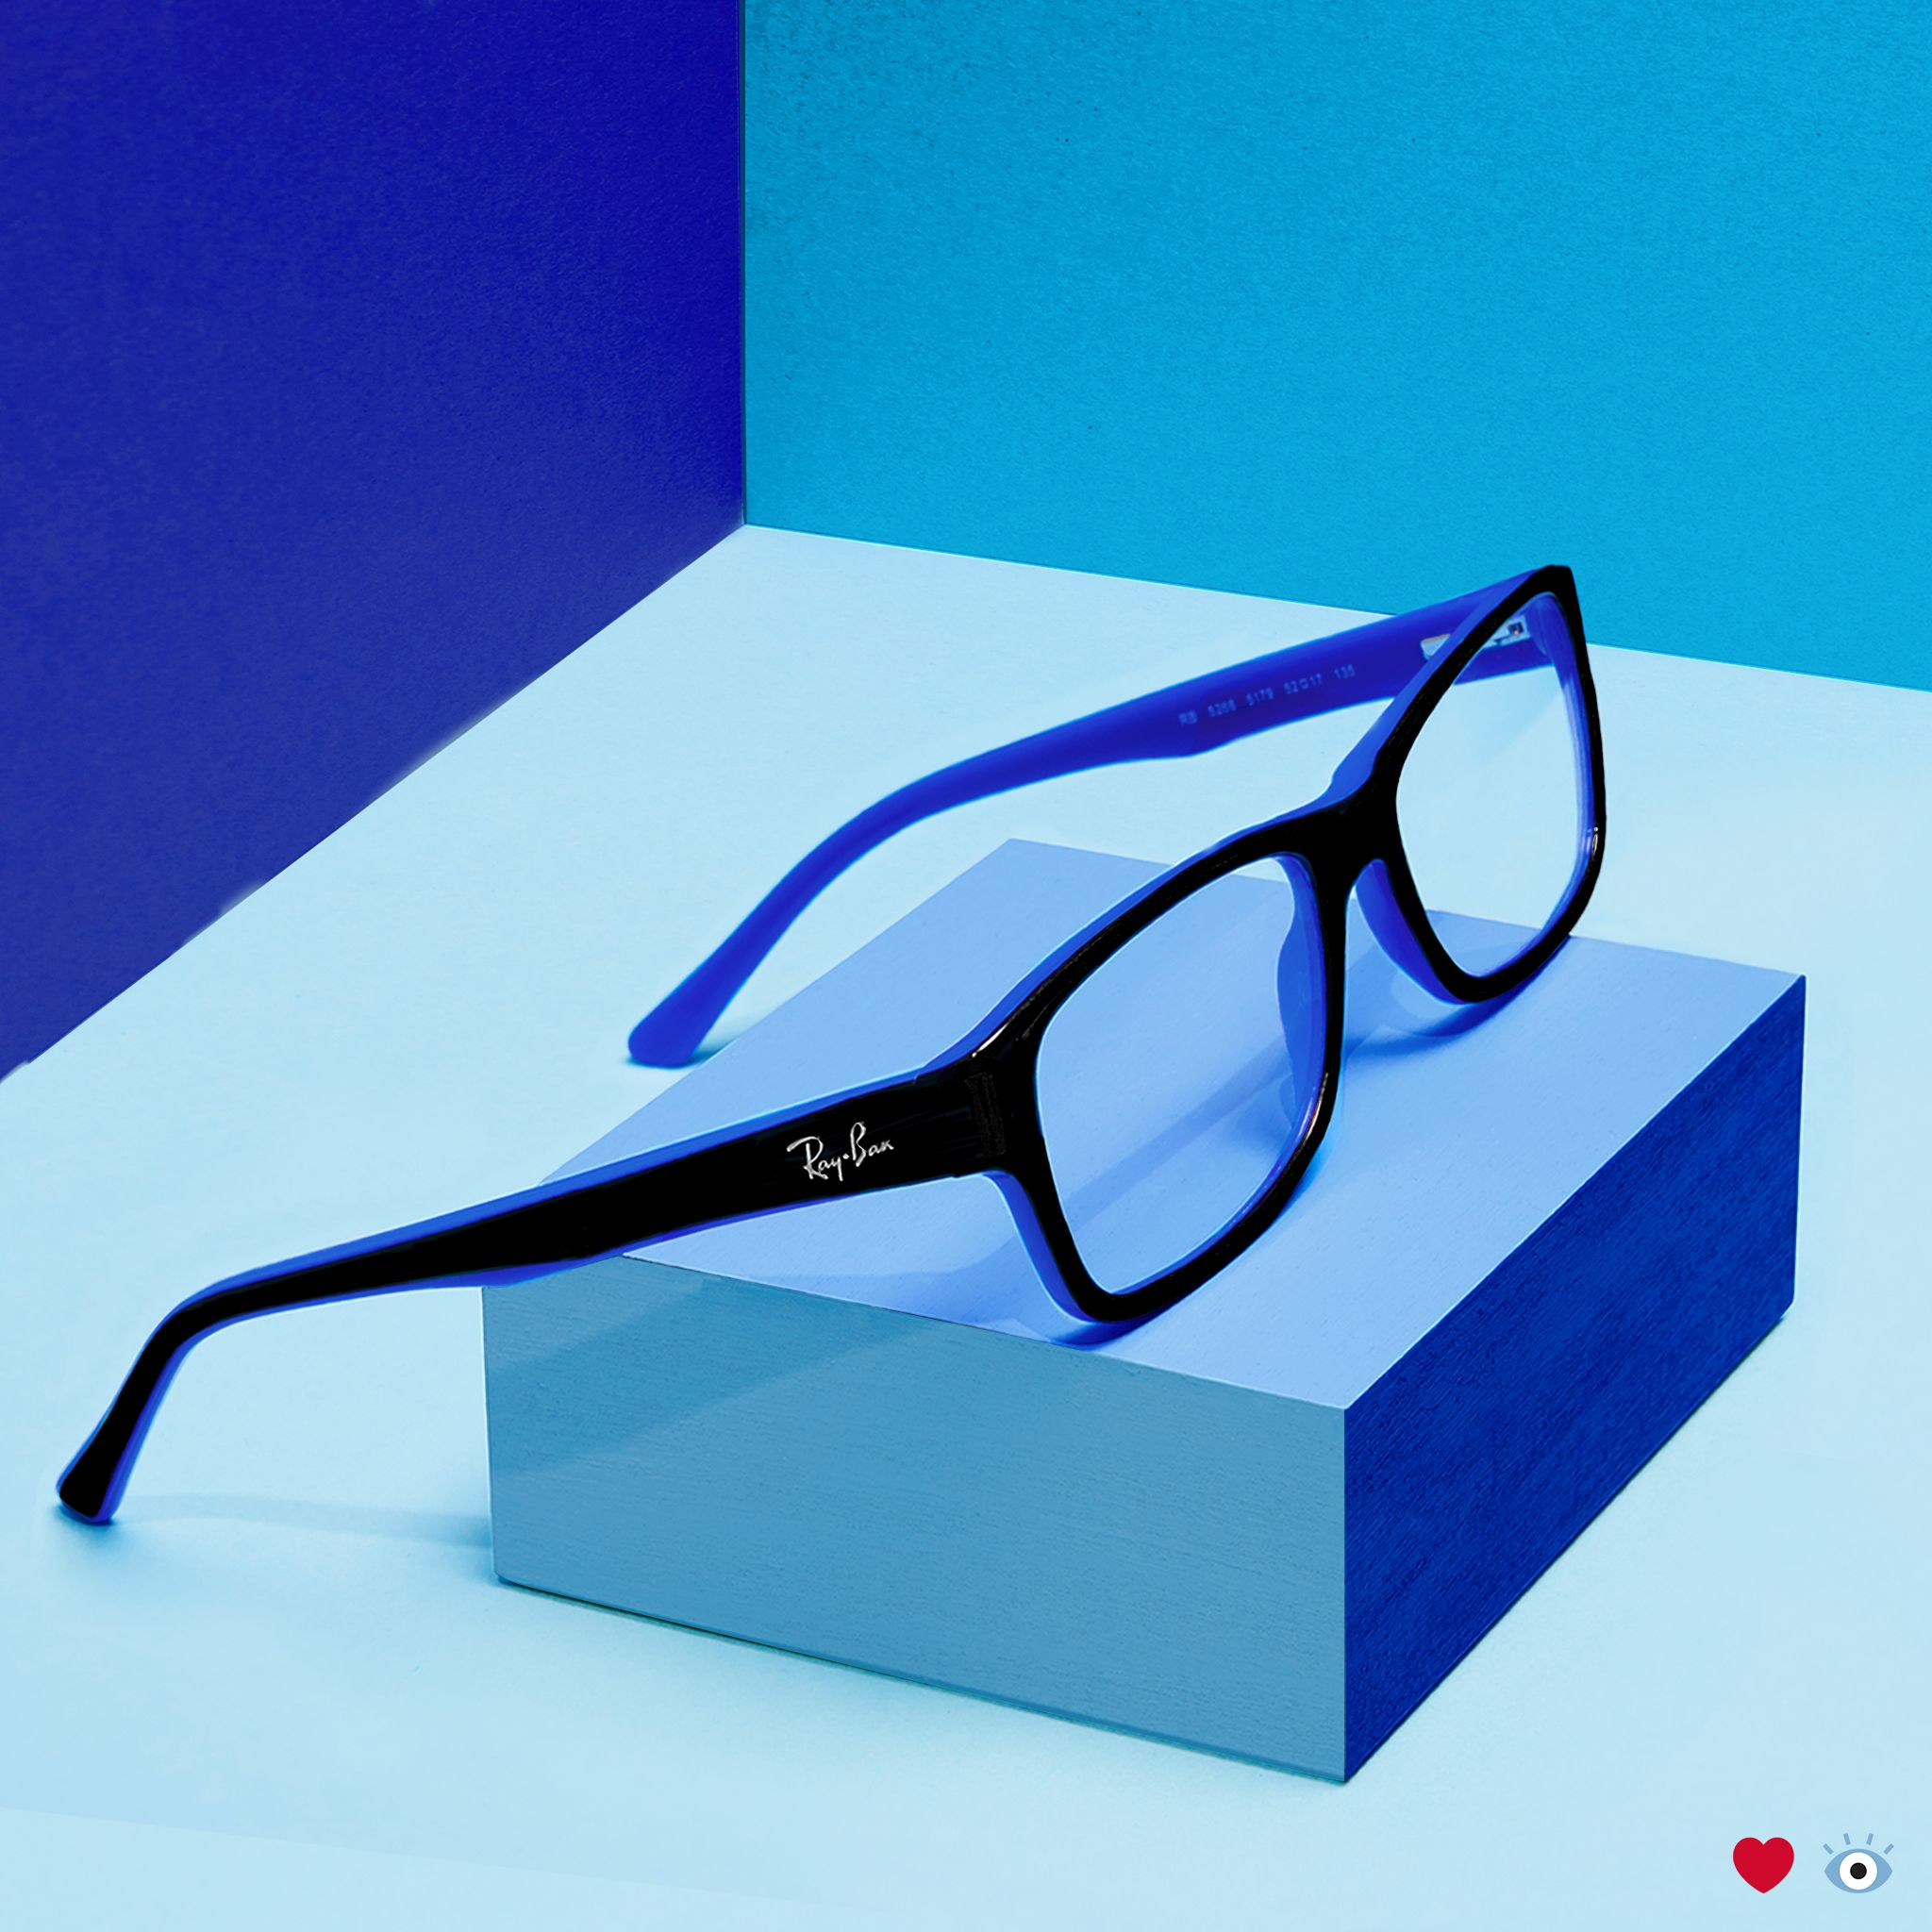 b5b44b4f81 These two tone black and blue Ray-Ban Jr frames bring a fresh flash of  color to any kid s school day.